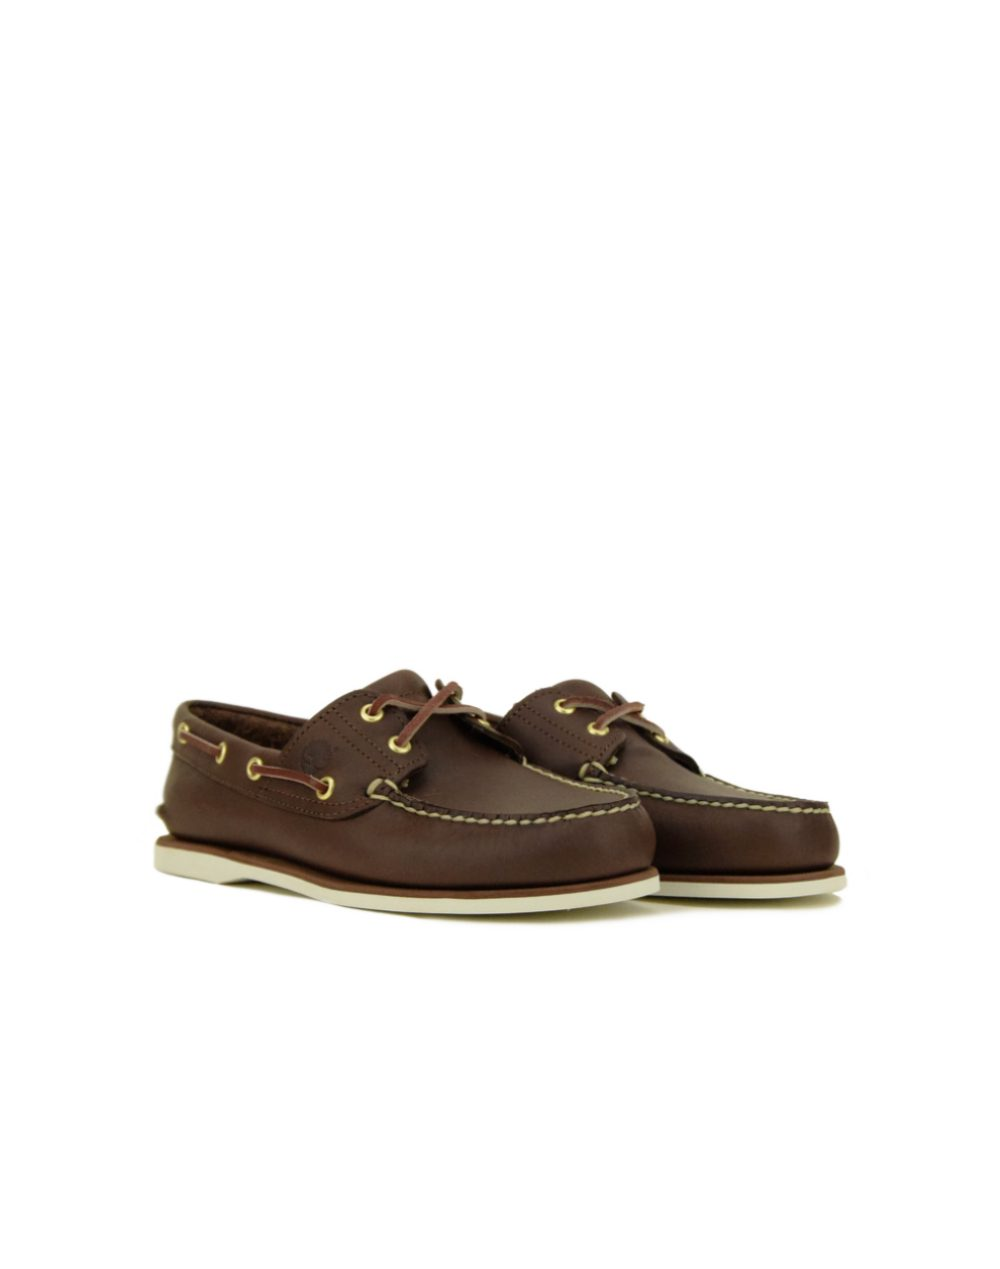 Timberland Classic 2 Eye Boat Shoe (TB074035 214) Brown